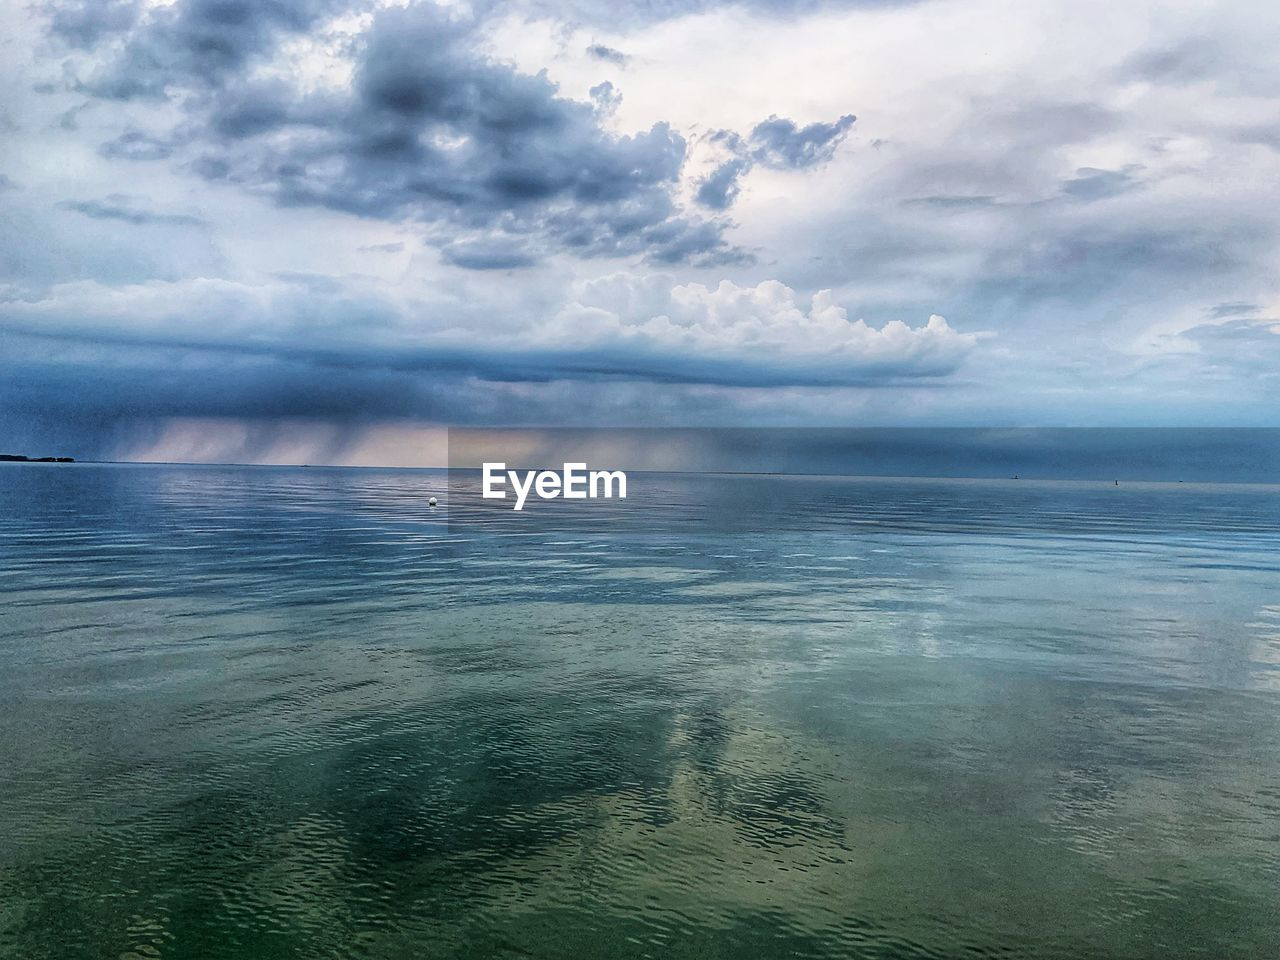 cloud - sky, sky, sea, scenics - nature, beauty in nature, water, tranquility, tranquil scene, horizon over water, horizon, day, waterfront, nature, no people, idyllic, outdoors, non-urban scene, seascape